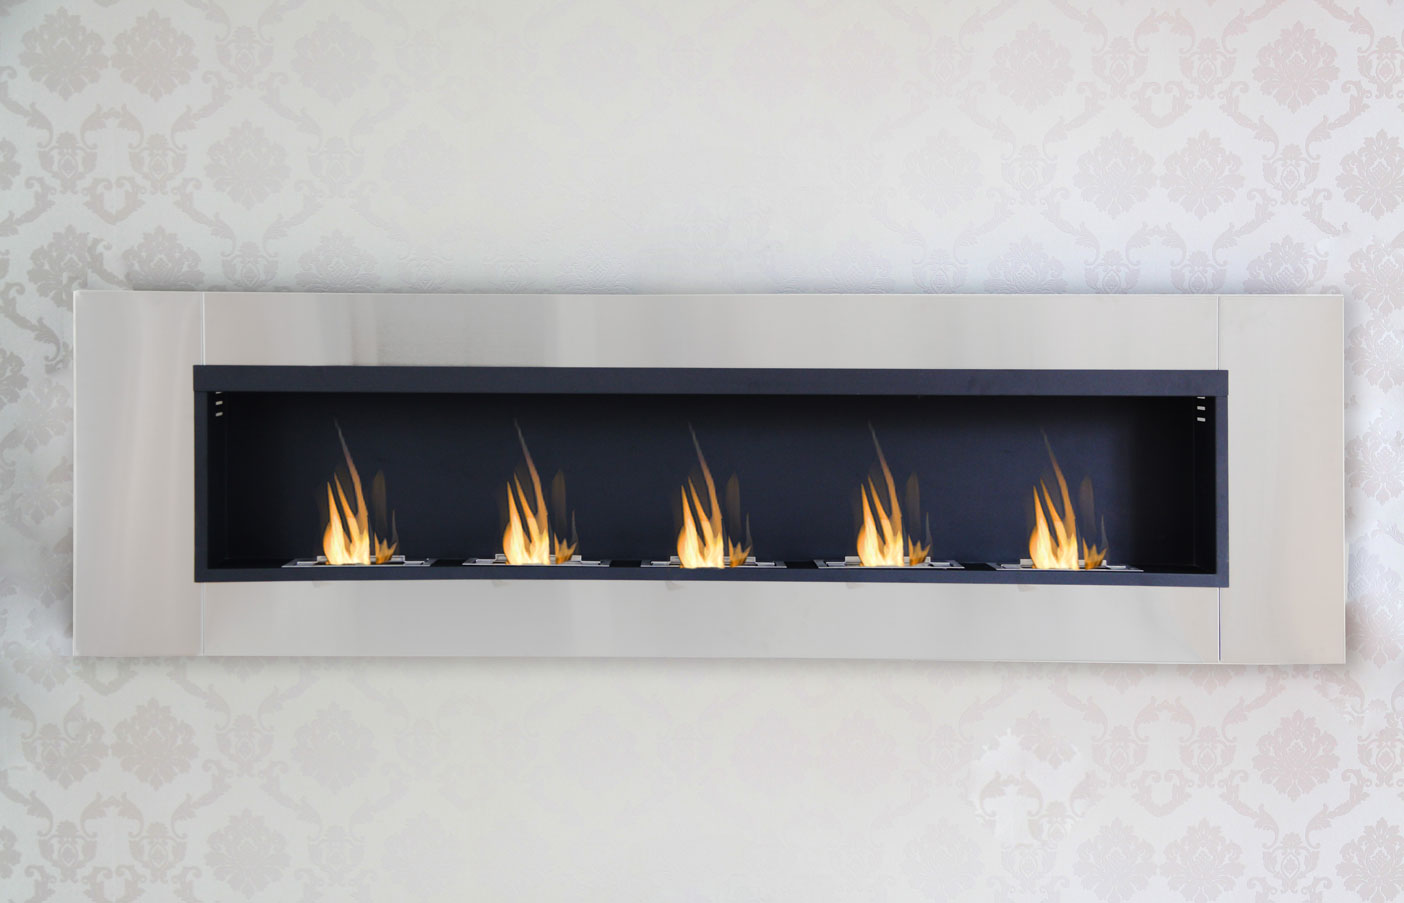 190 cm luxury chimney bio ethanol gel fireplace wall. Black Bedroom Furniture Sets. Home Design Ideas